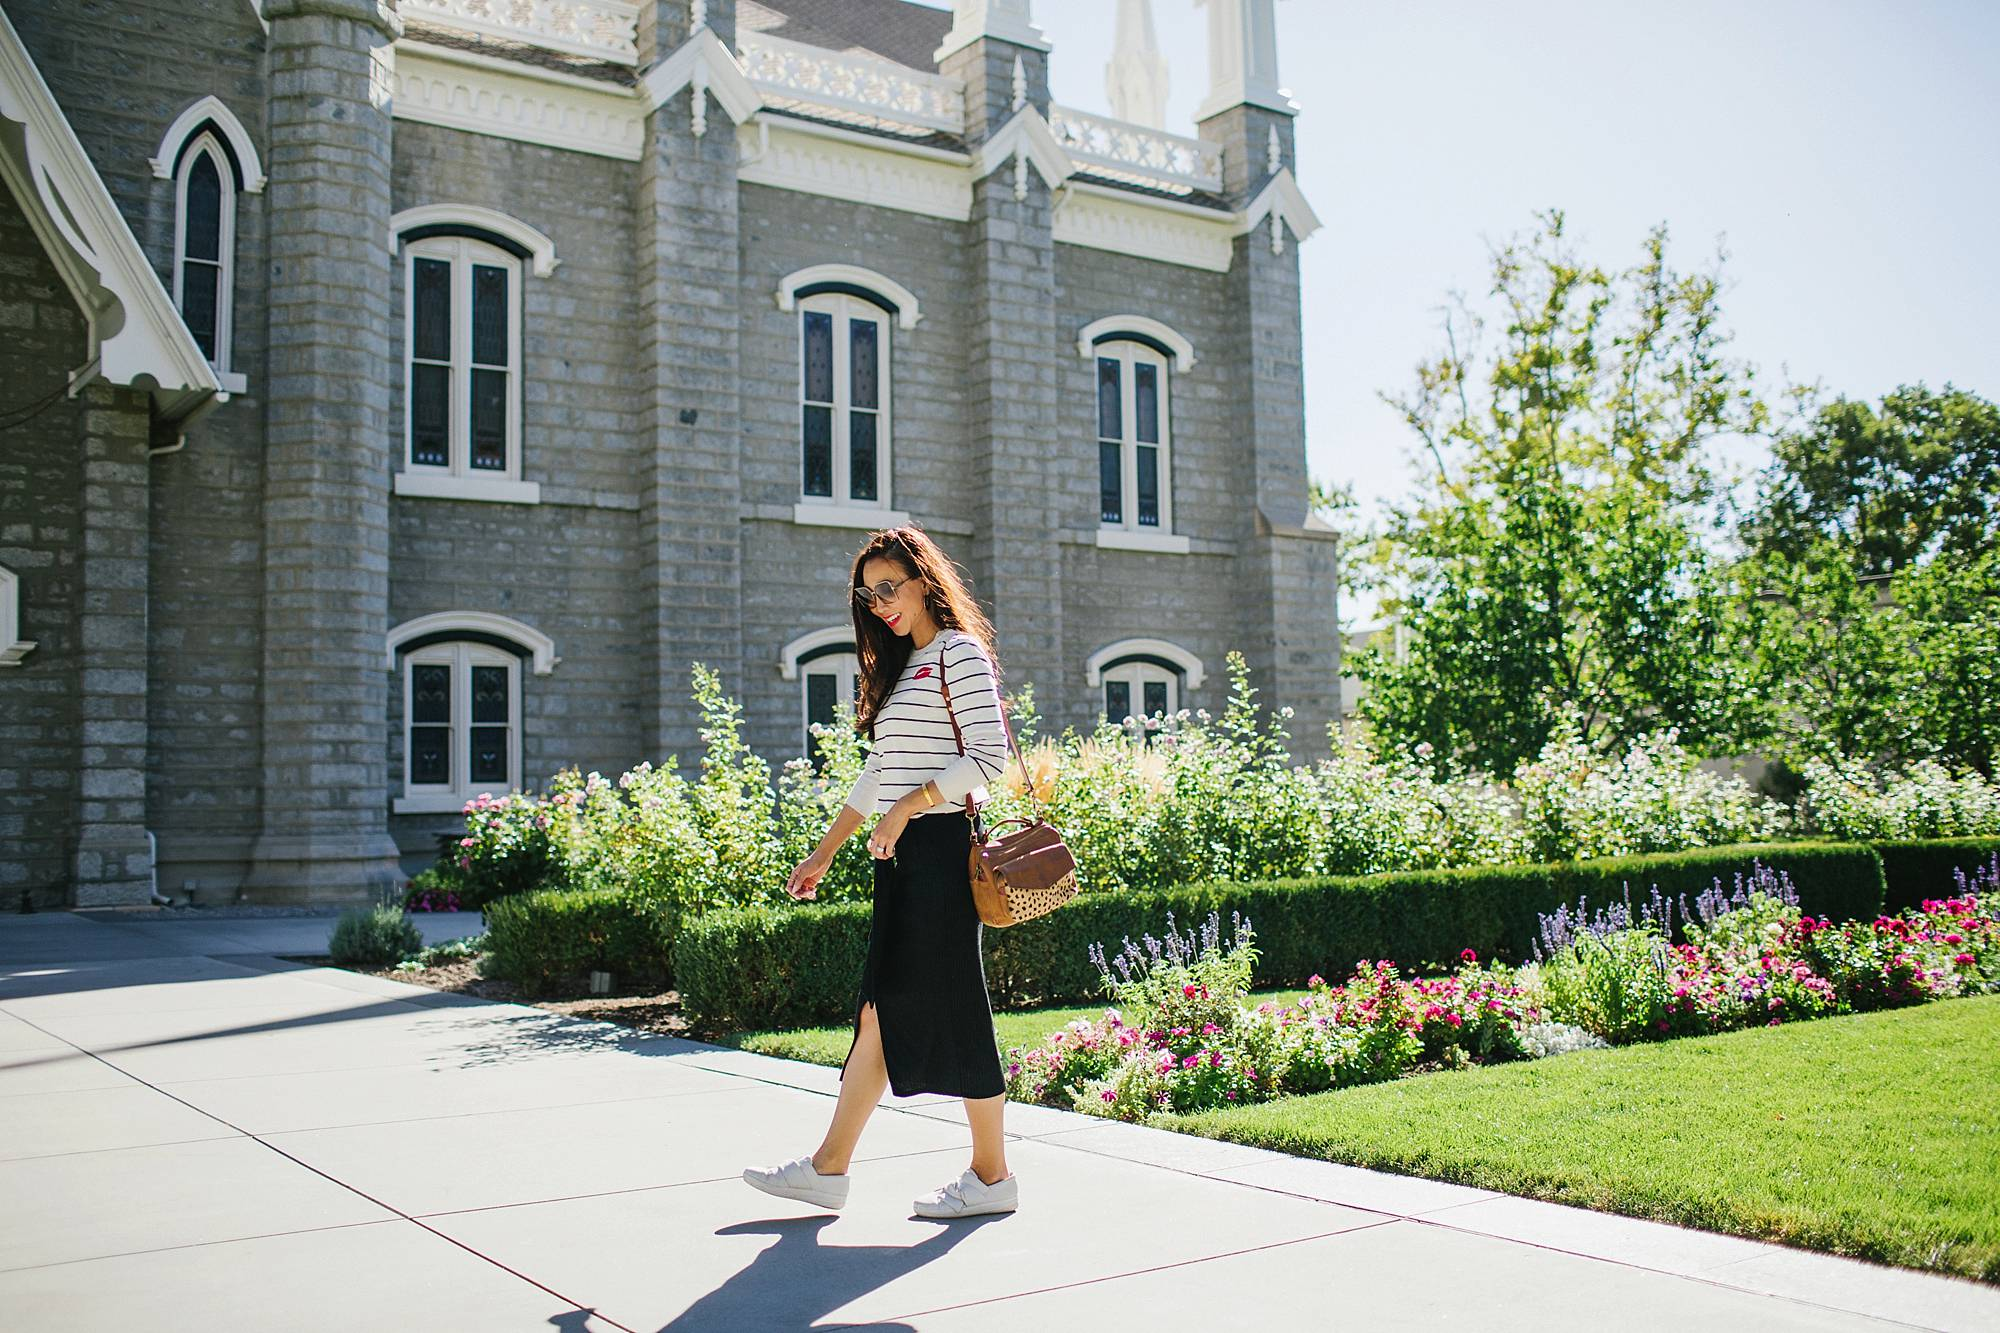 walking at mormon temple in salt lake city Utah - wearing black white stripe sweater banana republic and knit skirt black on lifestyle fashion blogger Diana Elizabeth phoenix arizona and white sneakers